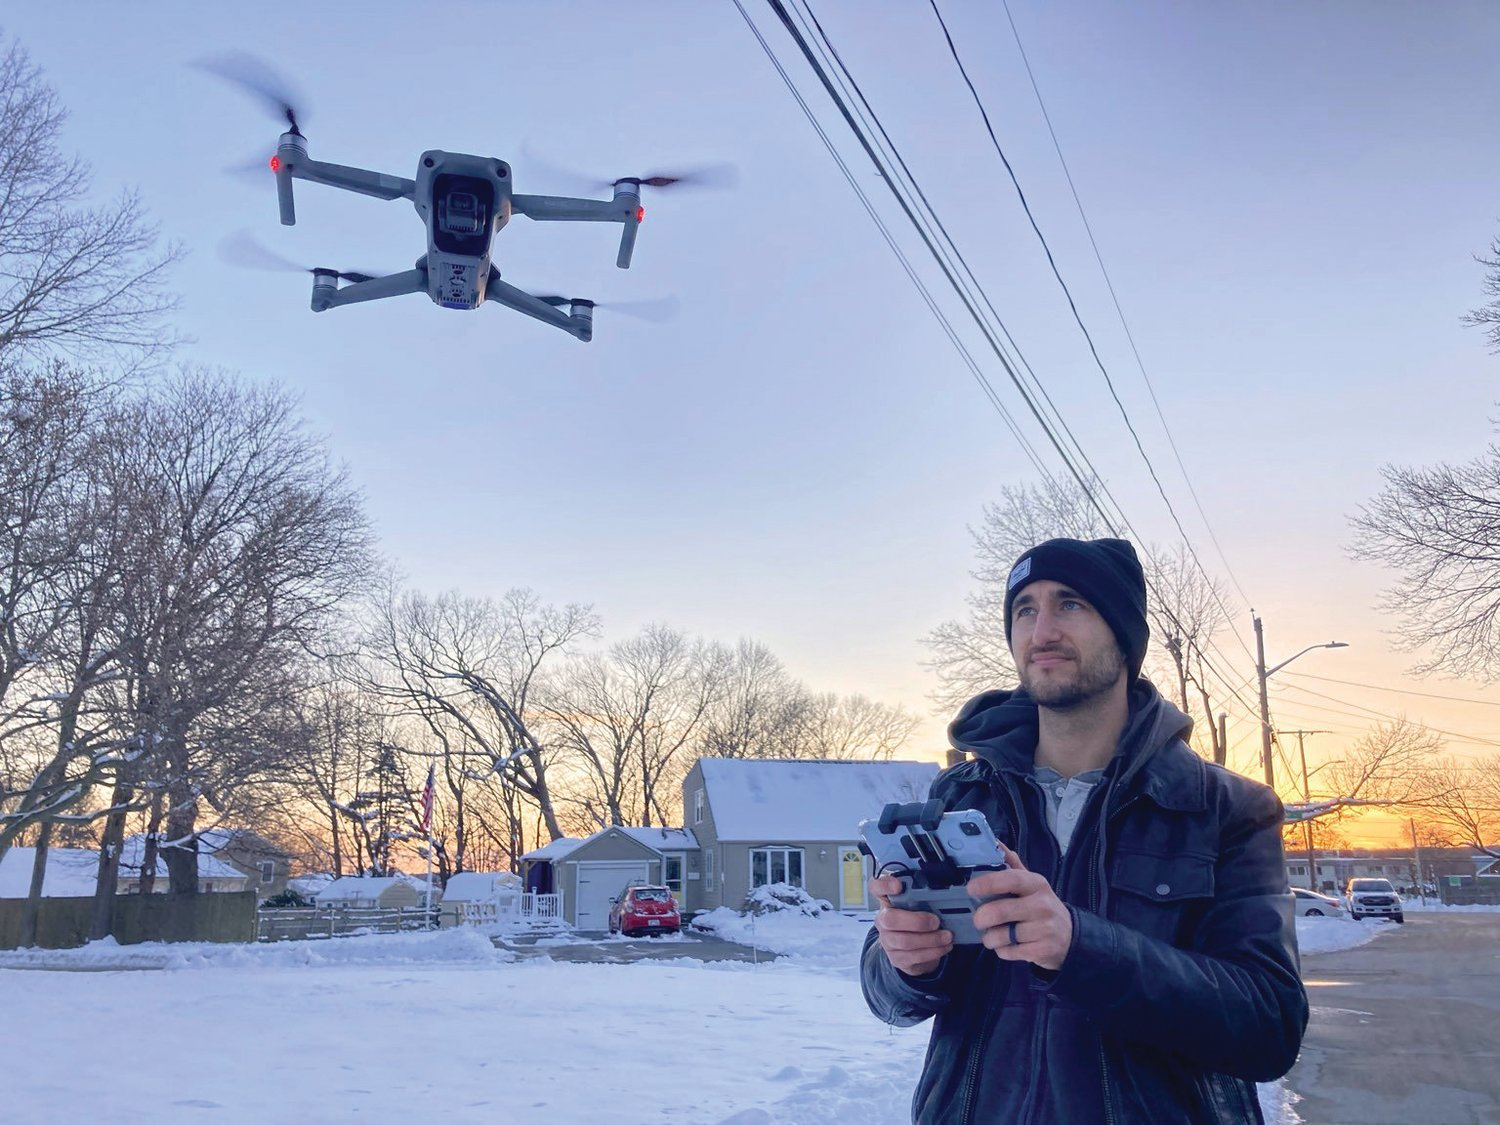 Pilot Matt Celeste has been flying drones commercially for several years and uses them not just in the wedding and event industry, but in real estate property listings across the state.